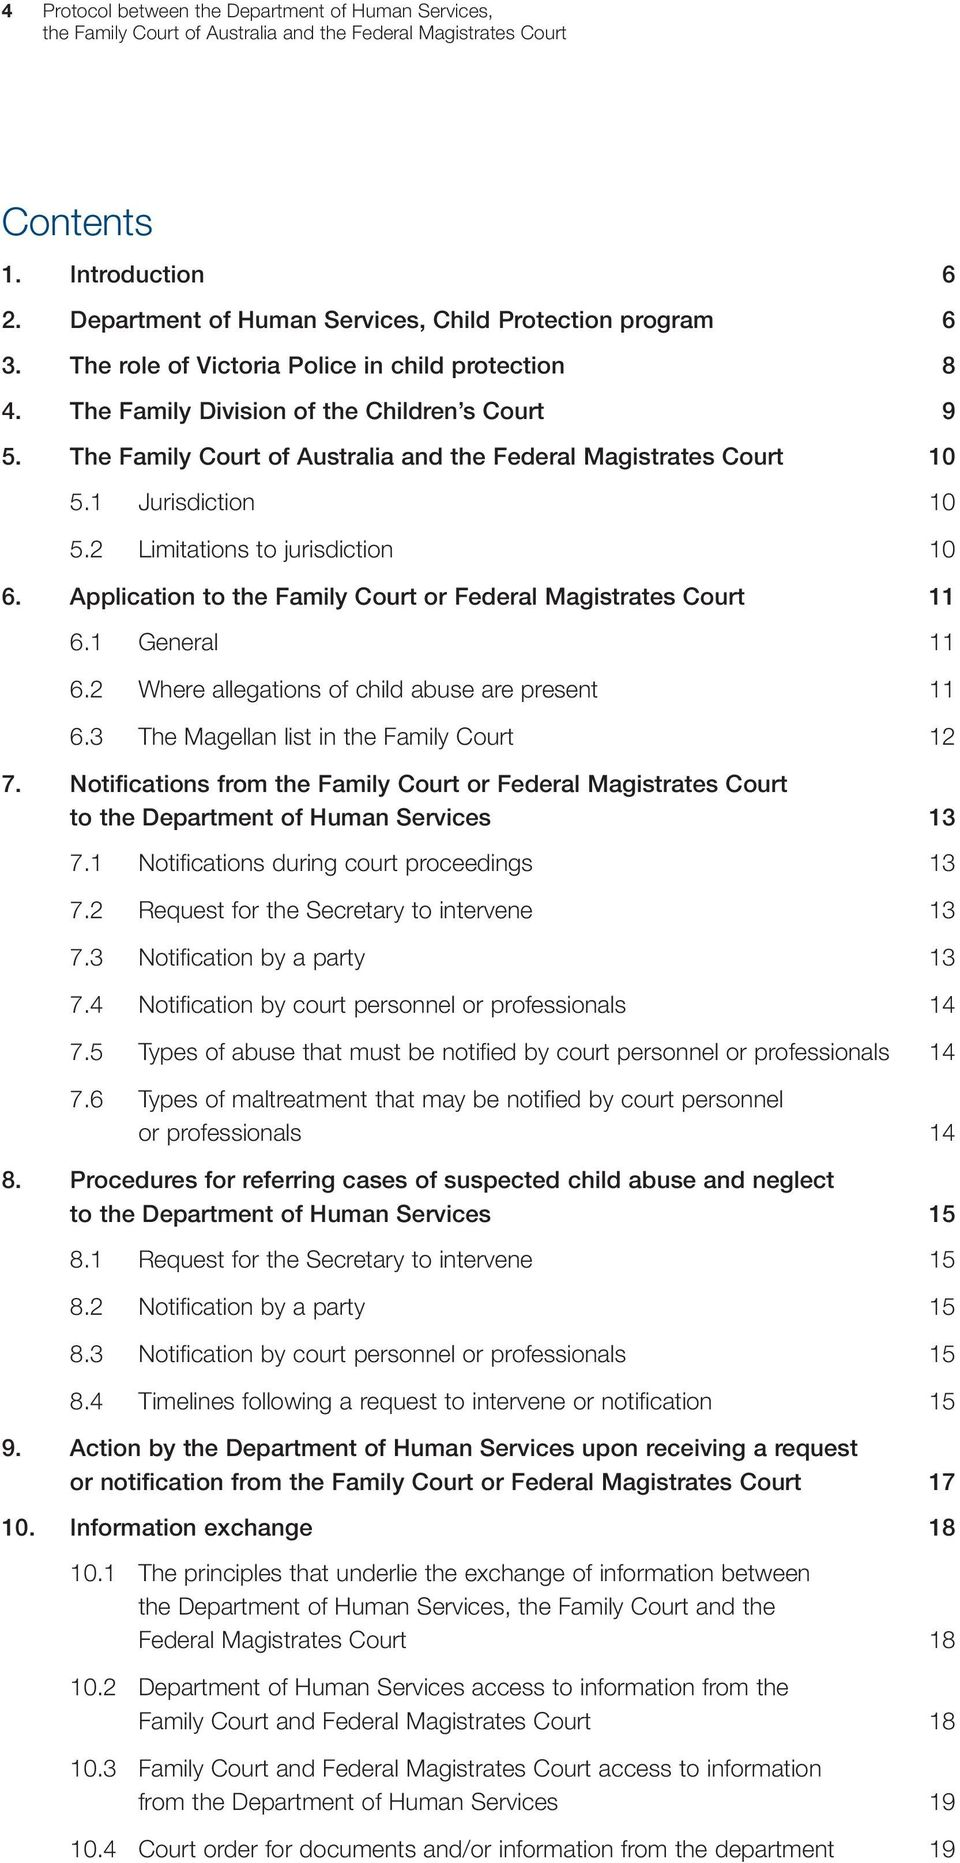 Application to the Family Court or Federal Magistrates Court 11 6.1 General 11 6.2 Where allegations of child abuse are present 11 6.3 The Magellan list in the Family Court 12 7.